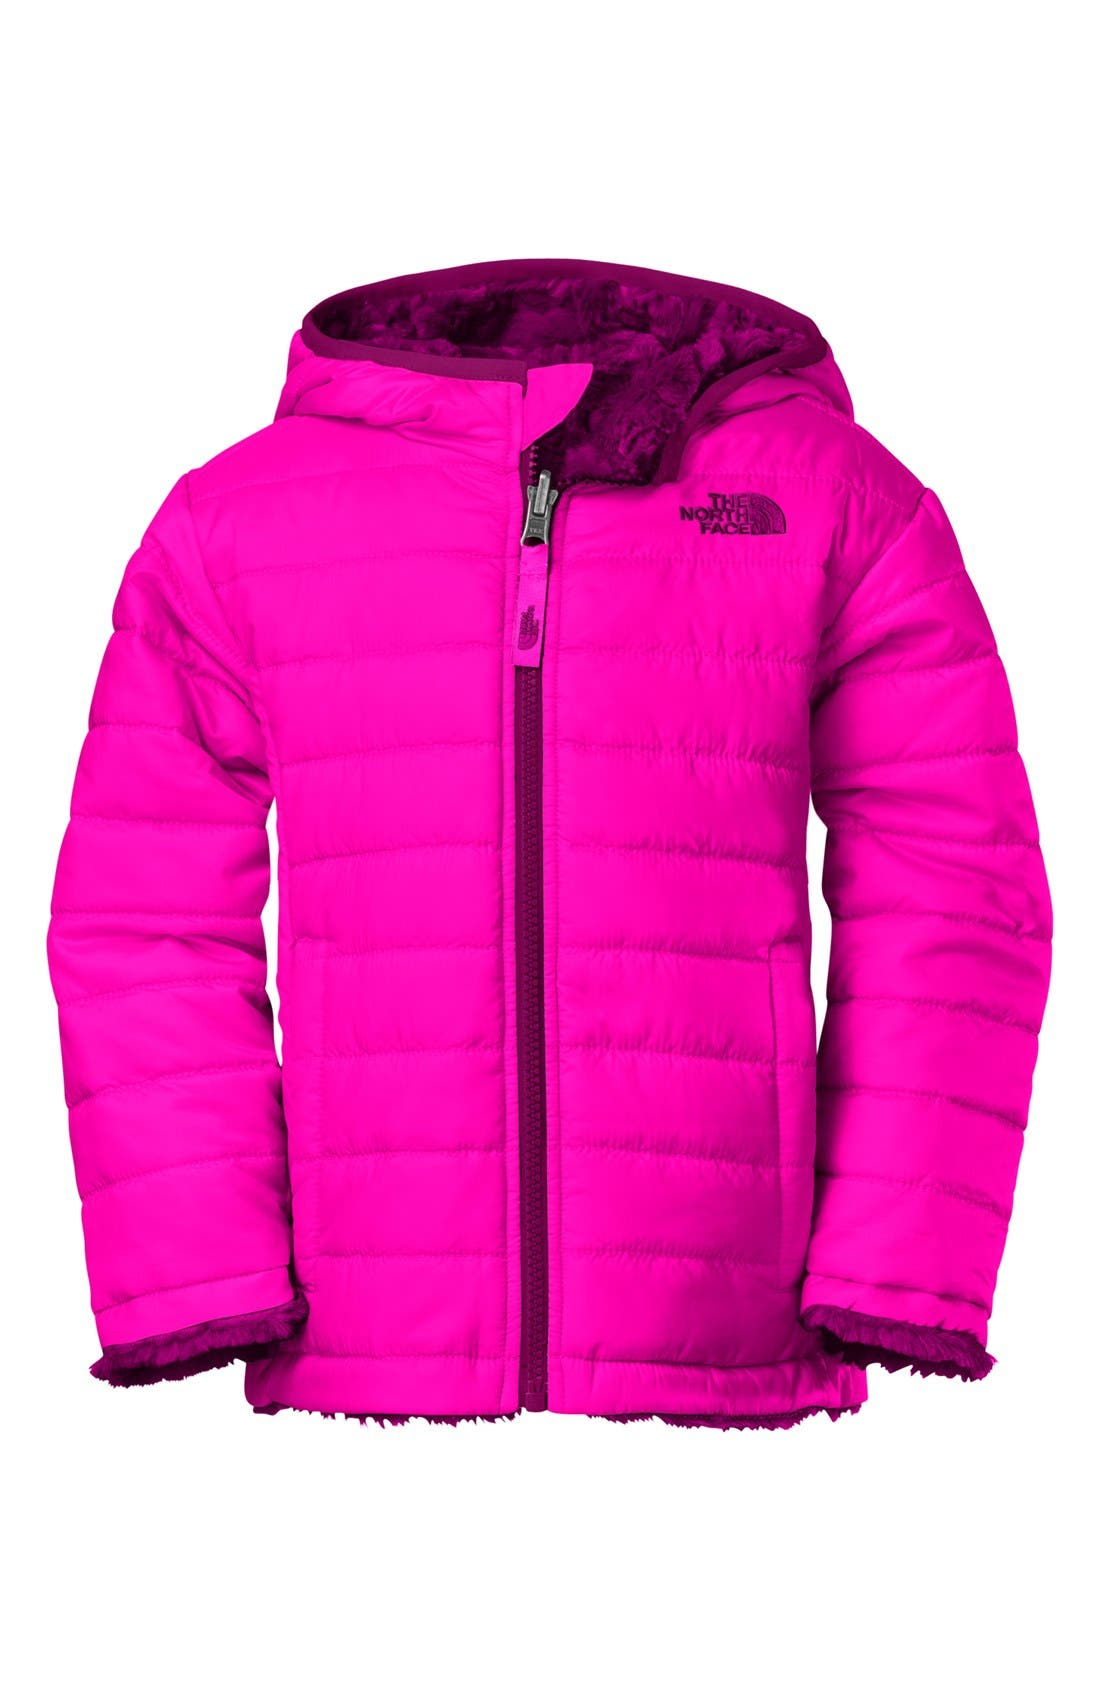 Alternate Image 1 Selected - The North Face 'Mossbud' Reversible Jacket (Toddler Girls) (Online Only)